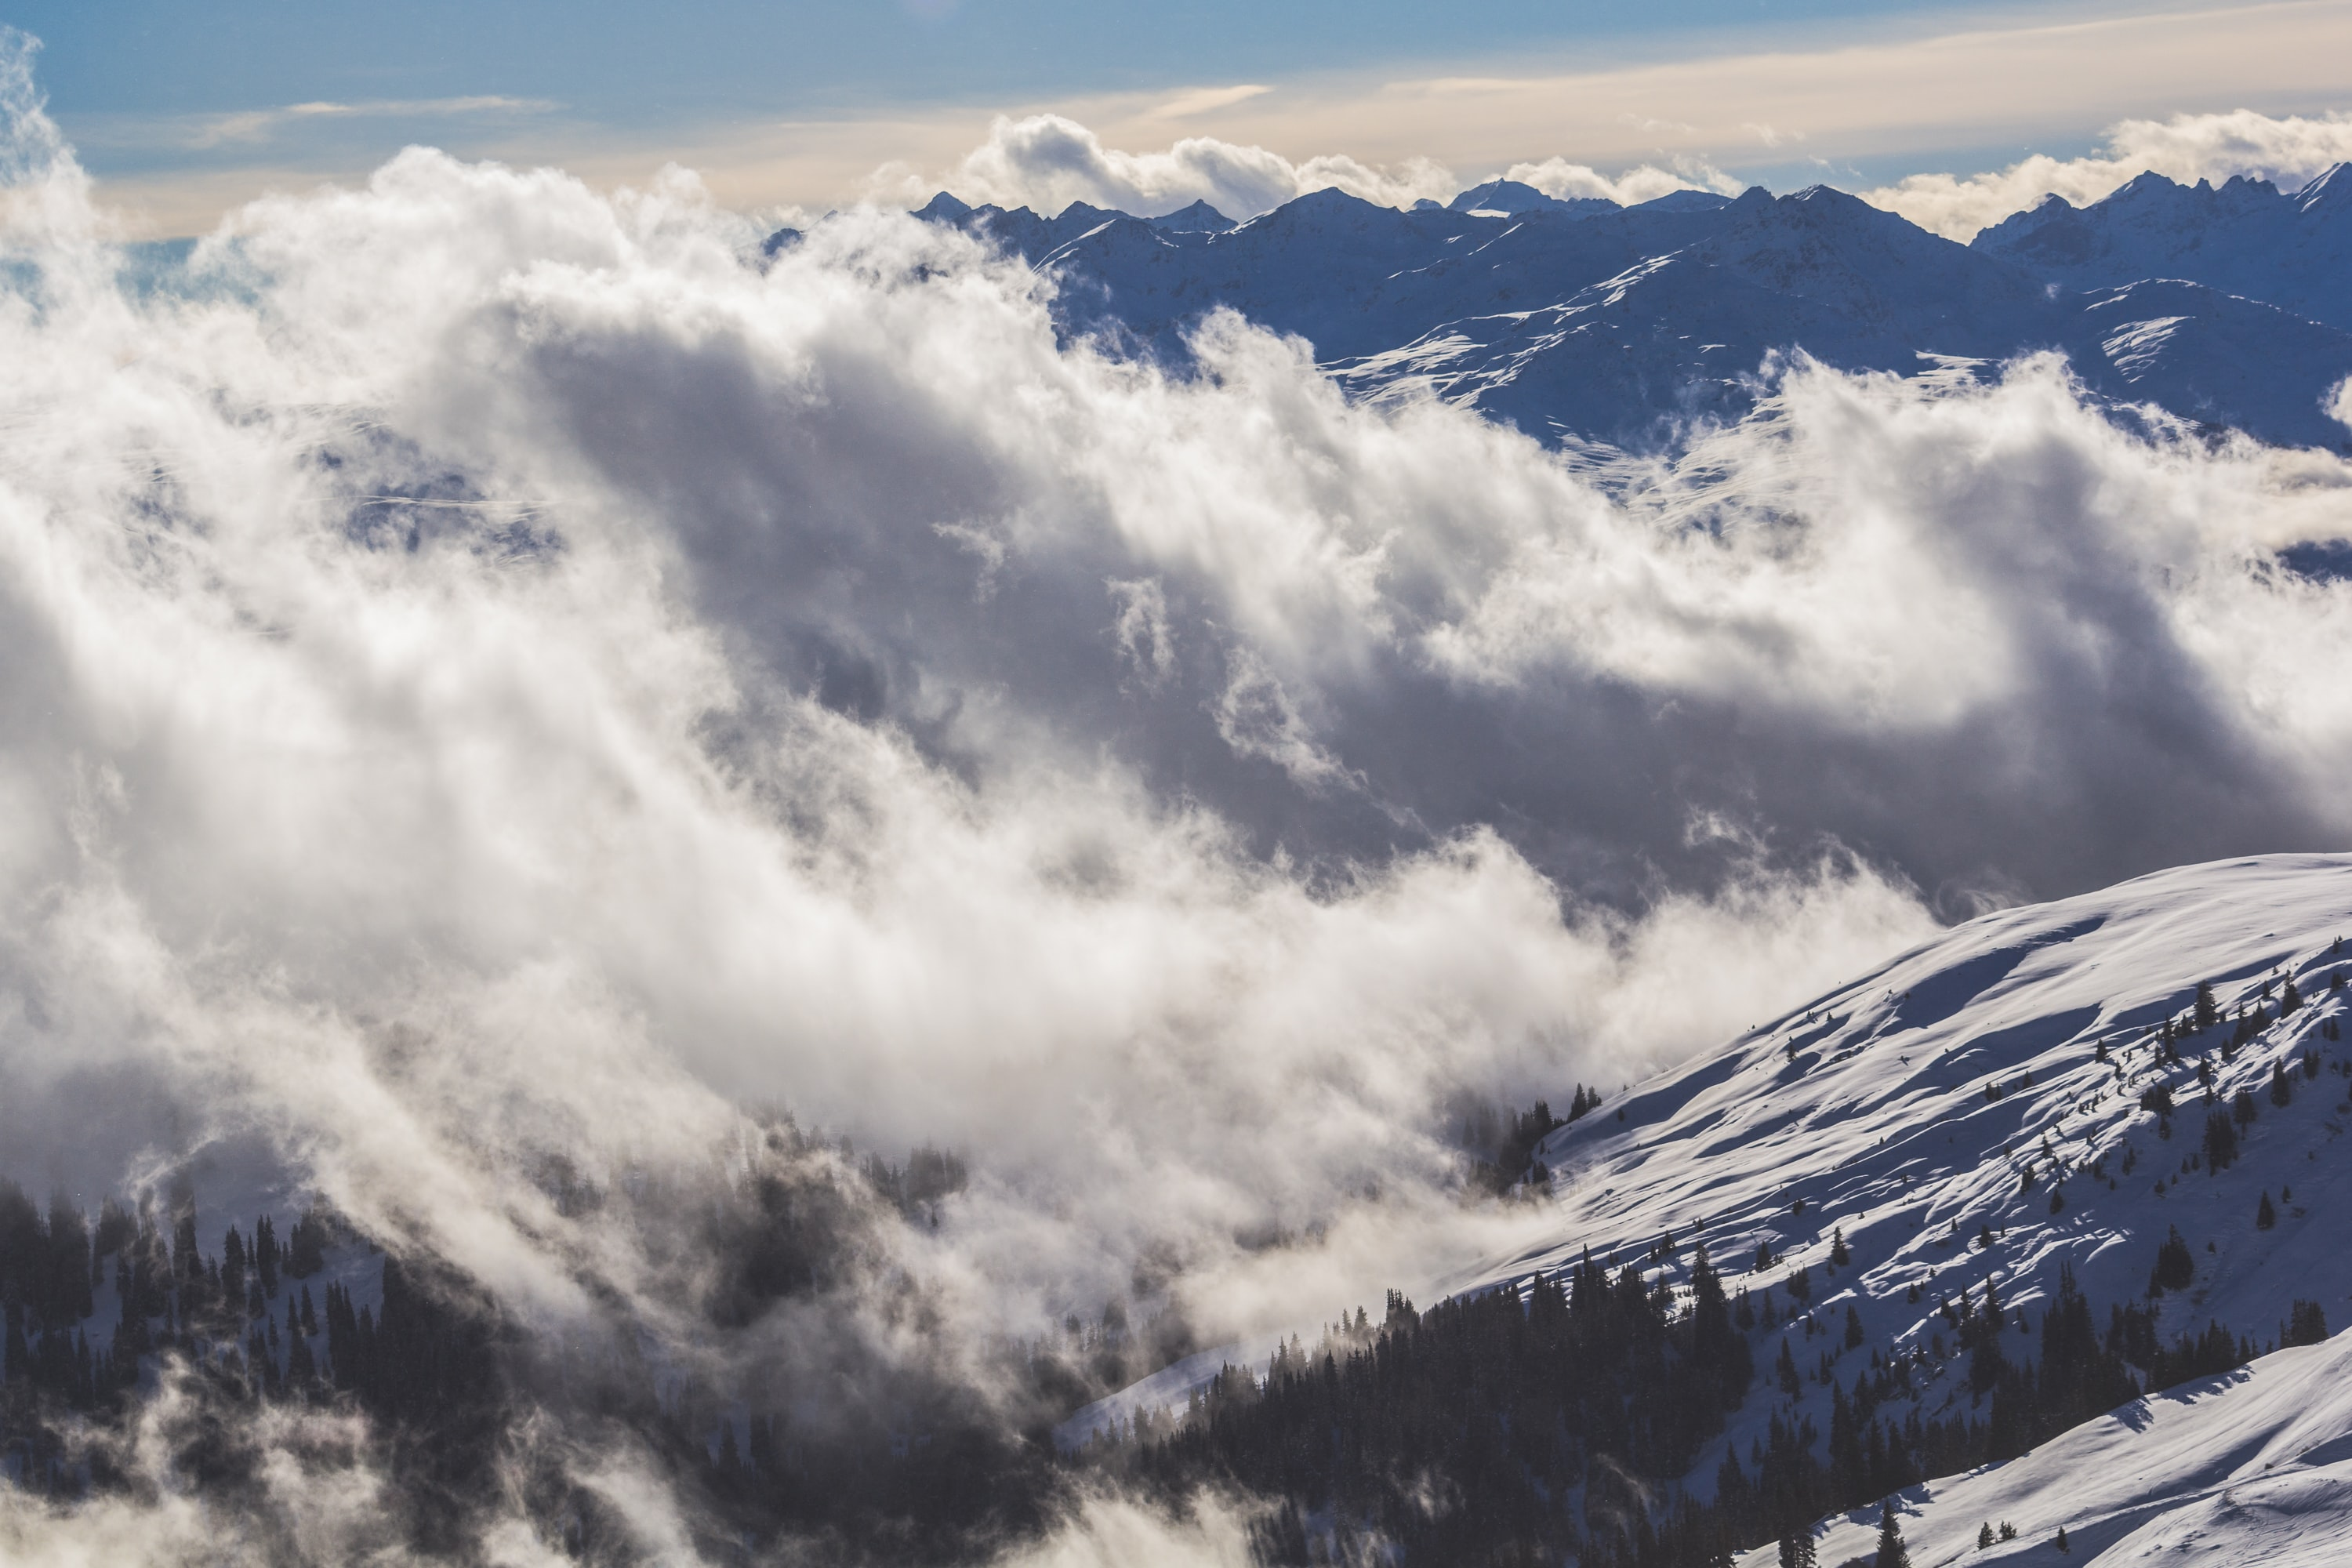 Clouds cover snowcapped mountains in Laax